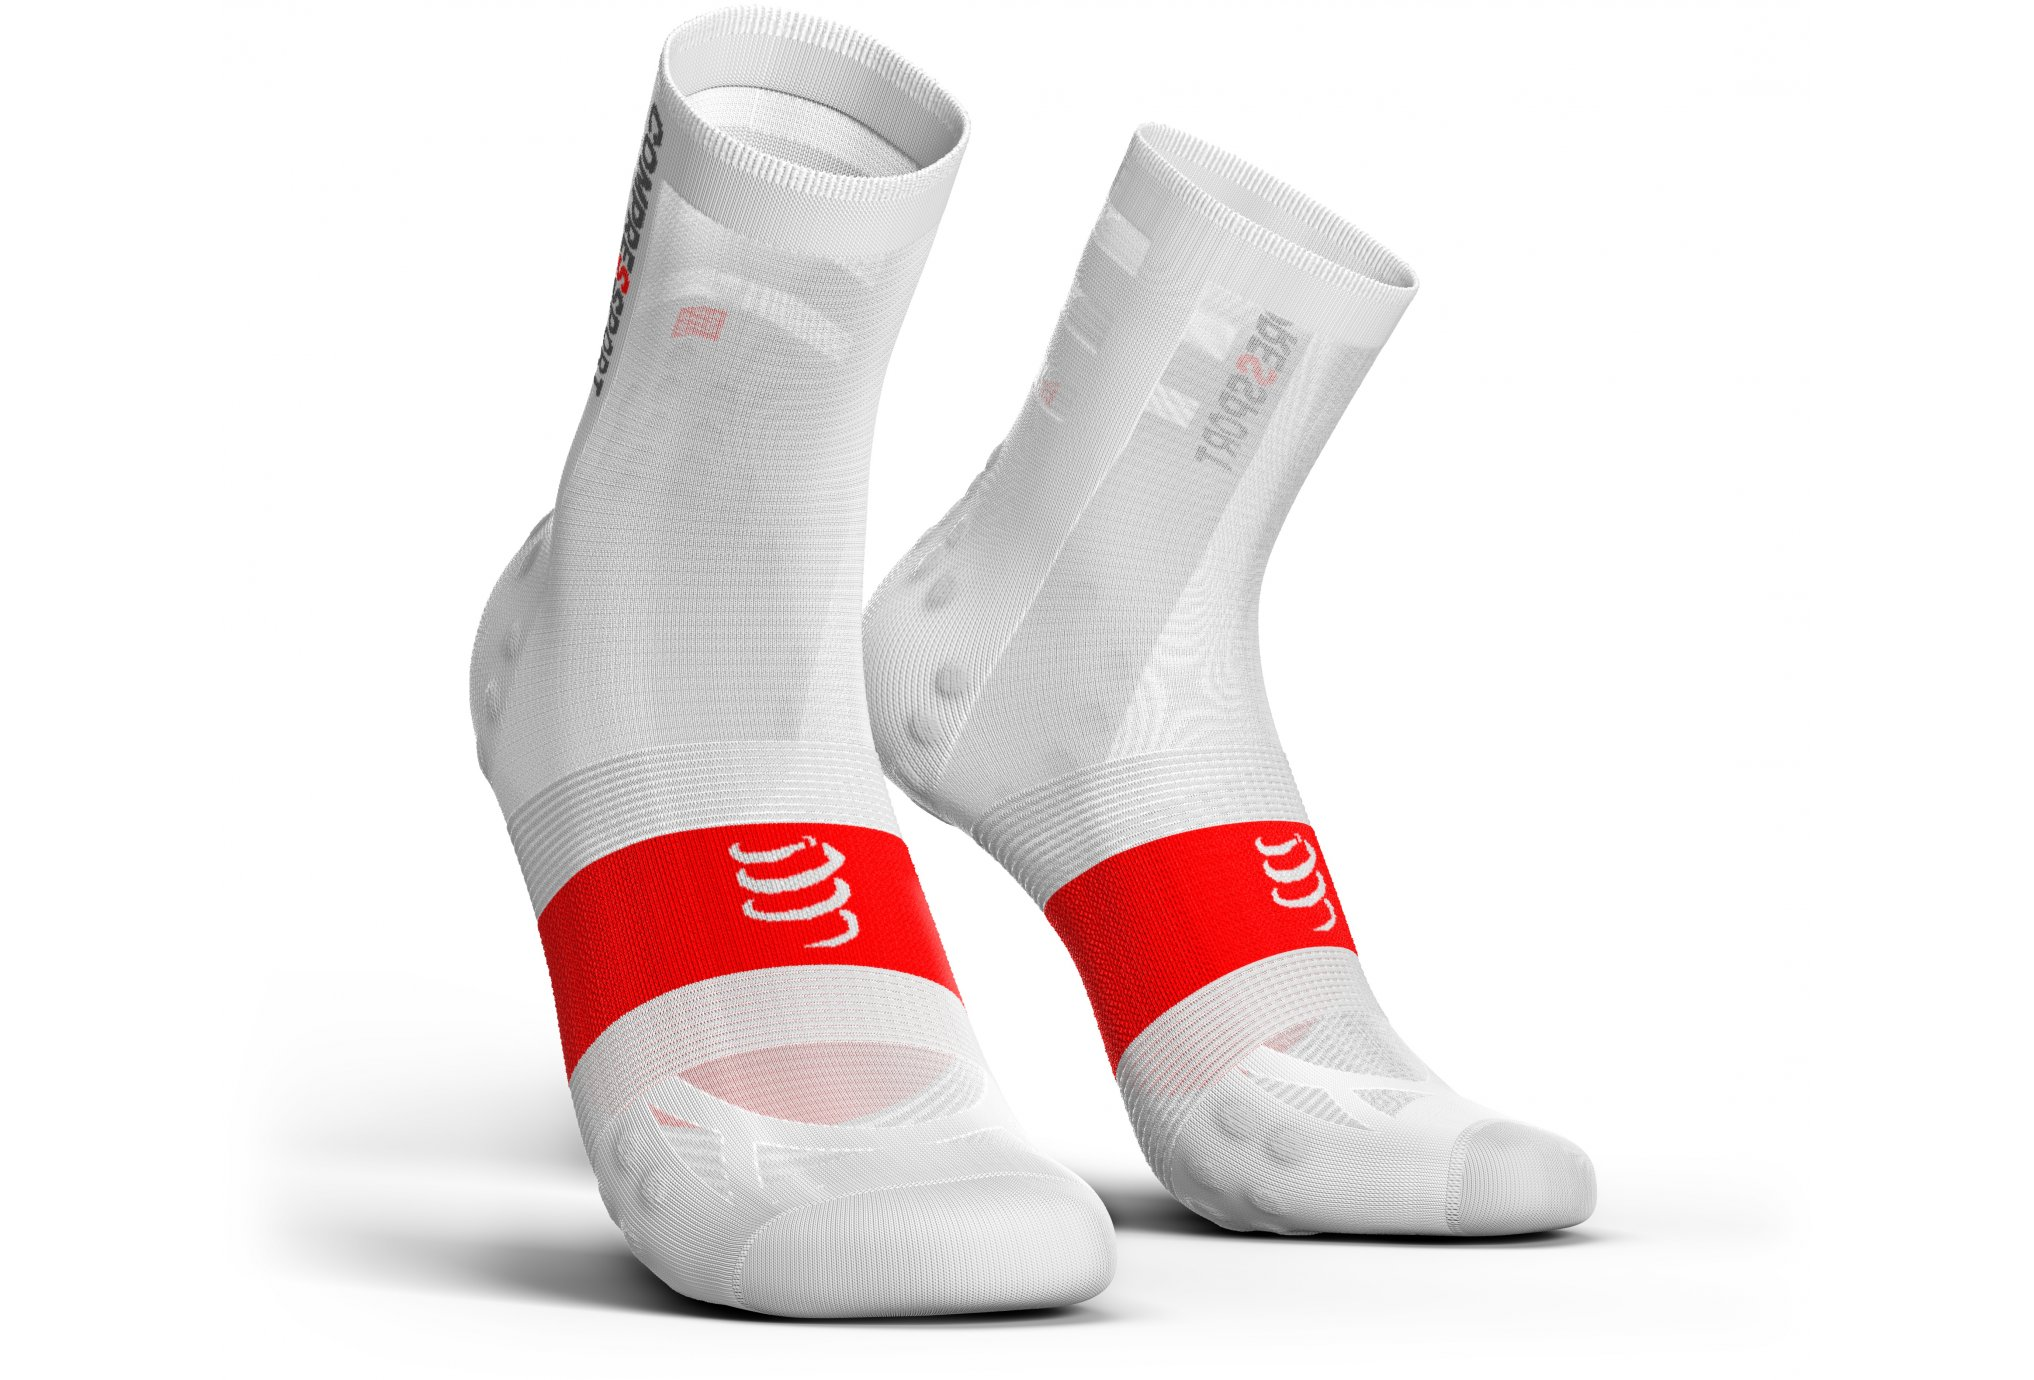 Compressport Pro Racing V 3.0 Ultra Light Run High Chaussettes